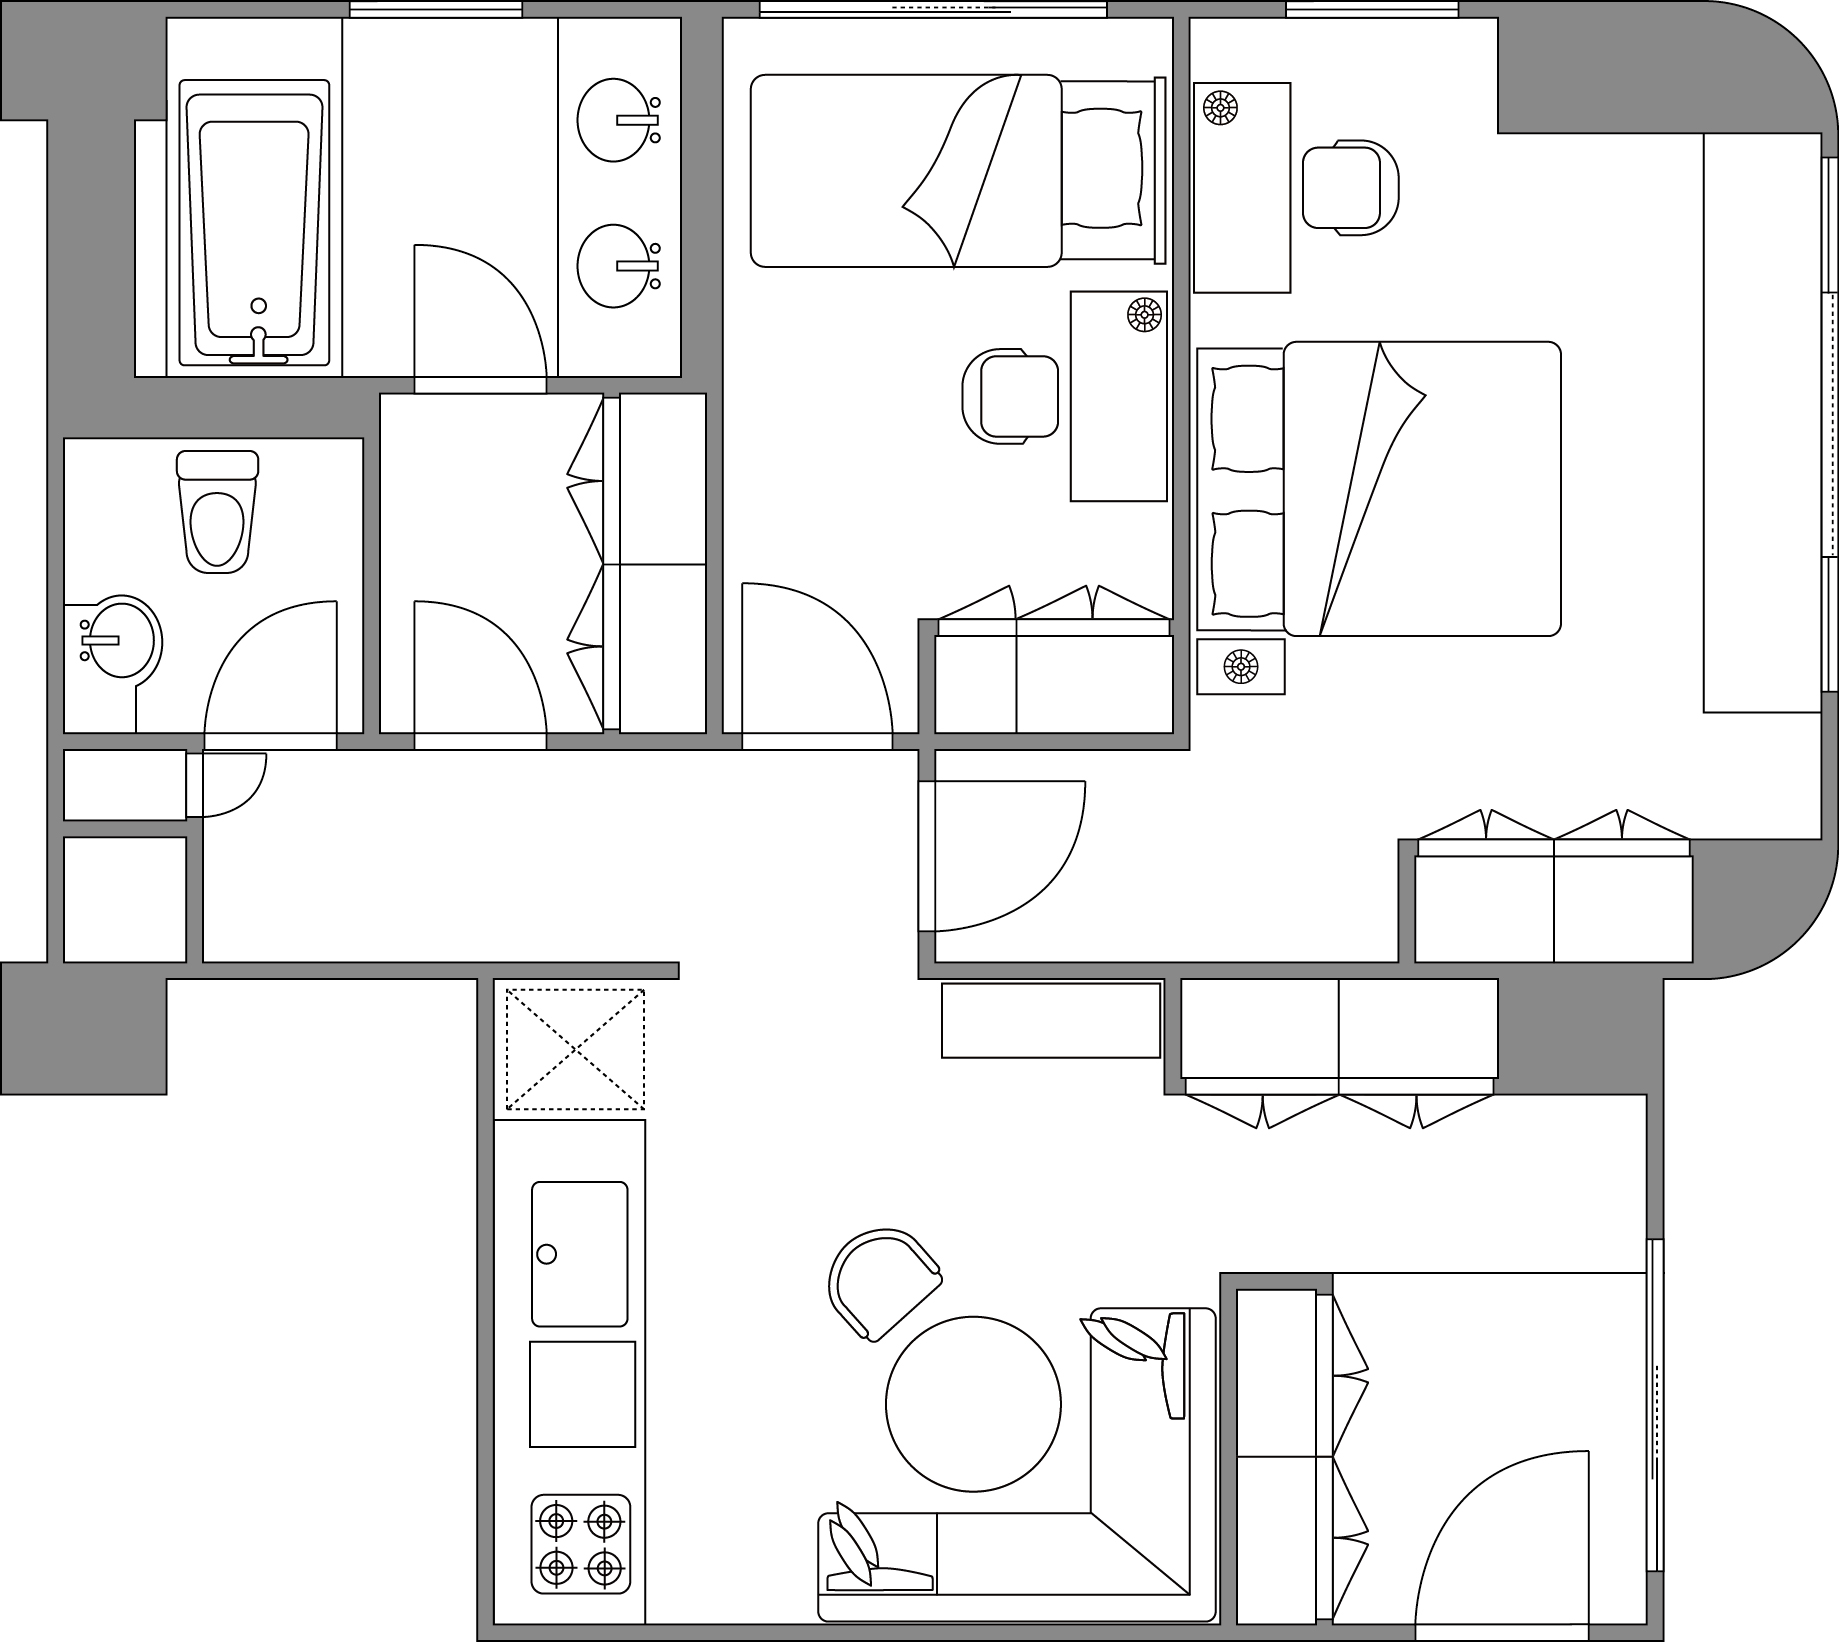 2 bedroom deluxe apartment floor plan at Somerset Shinagawa Apartments